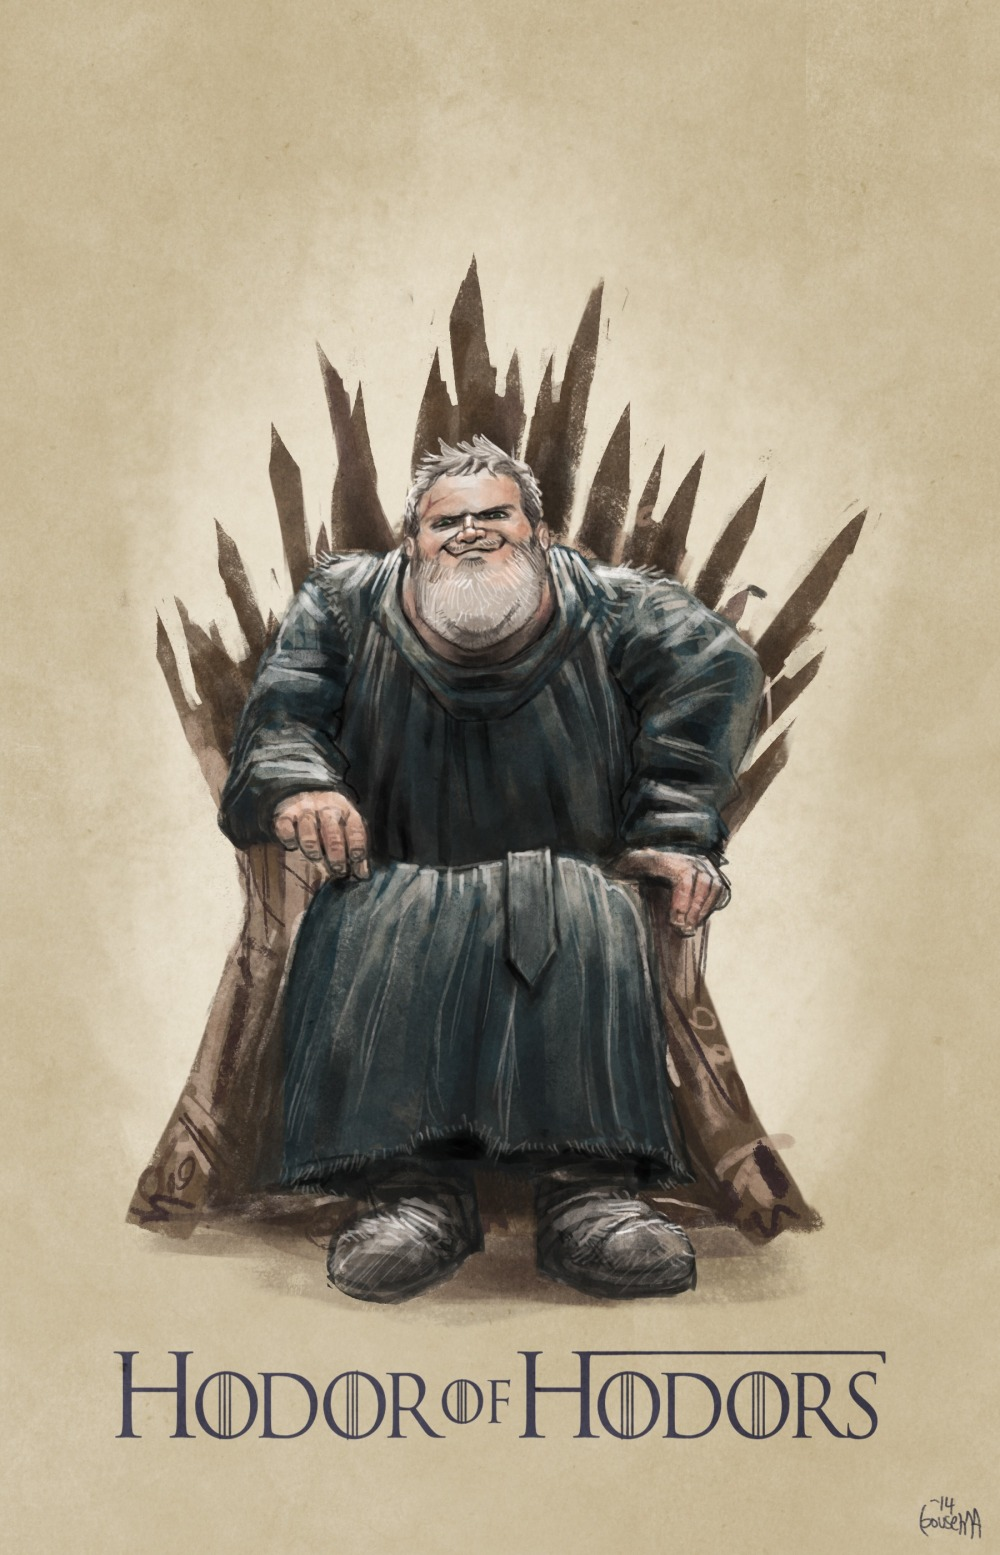 game-of-thrones-fan-art-by-james-bousema-king-hodor